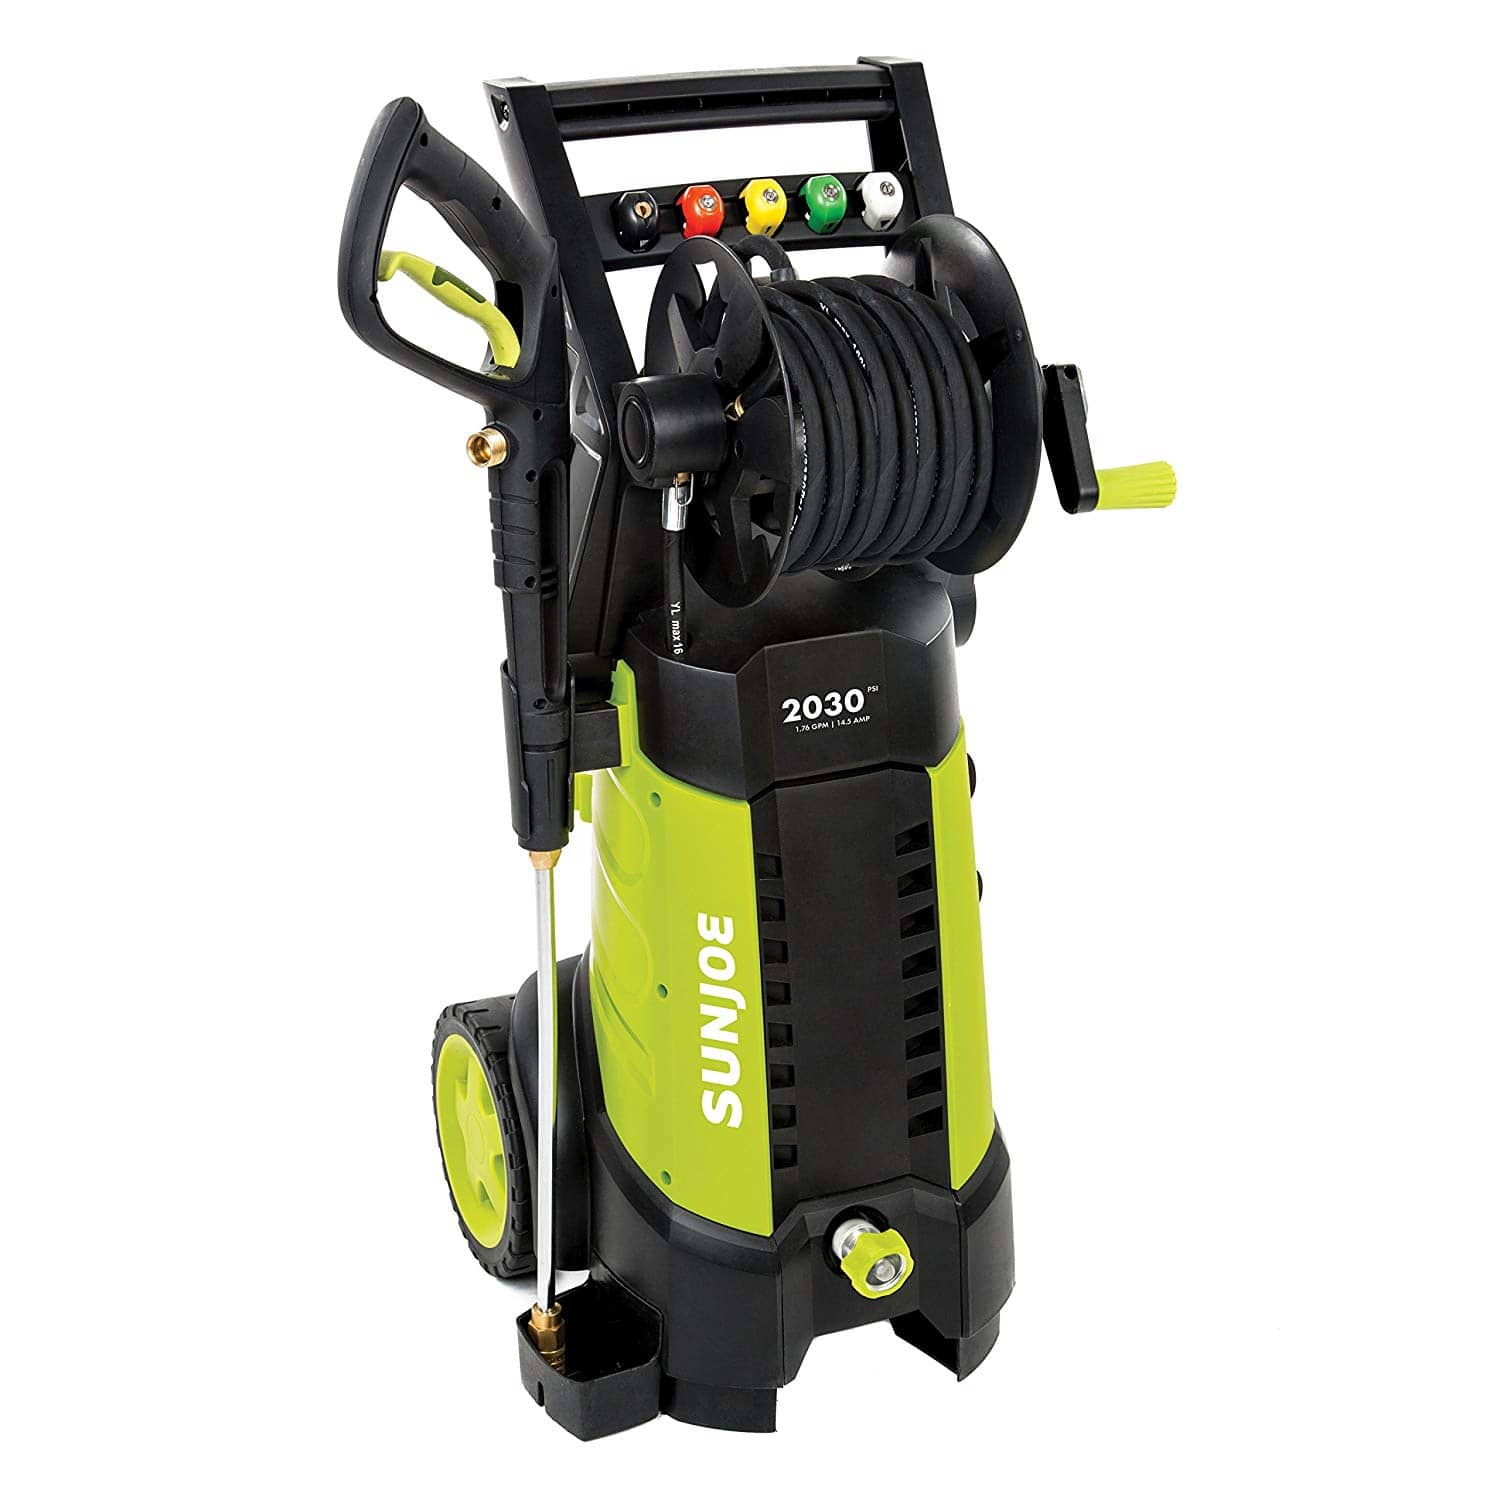 Sun Joe SPX3001 2030 PSI 1.76 GPM 14.5 AMP Electric Pressure Washer w/ Hose Reel (Green) $115.99 + Free Shpping via Amazon